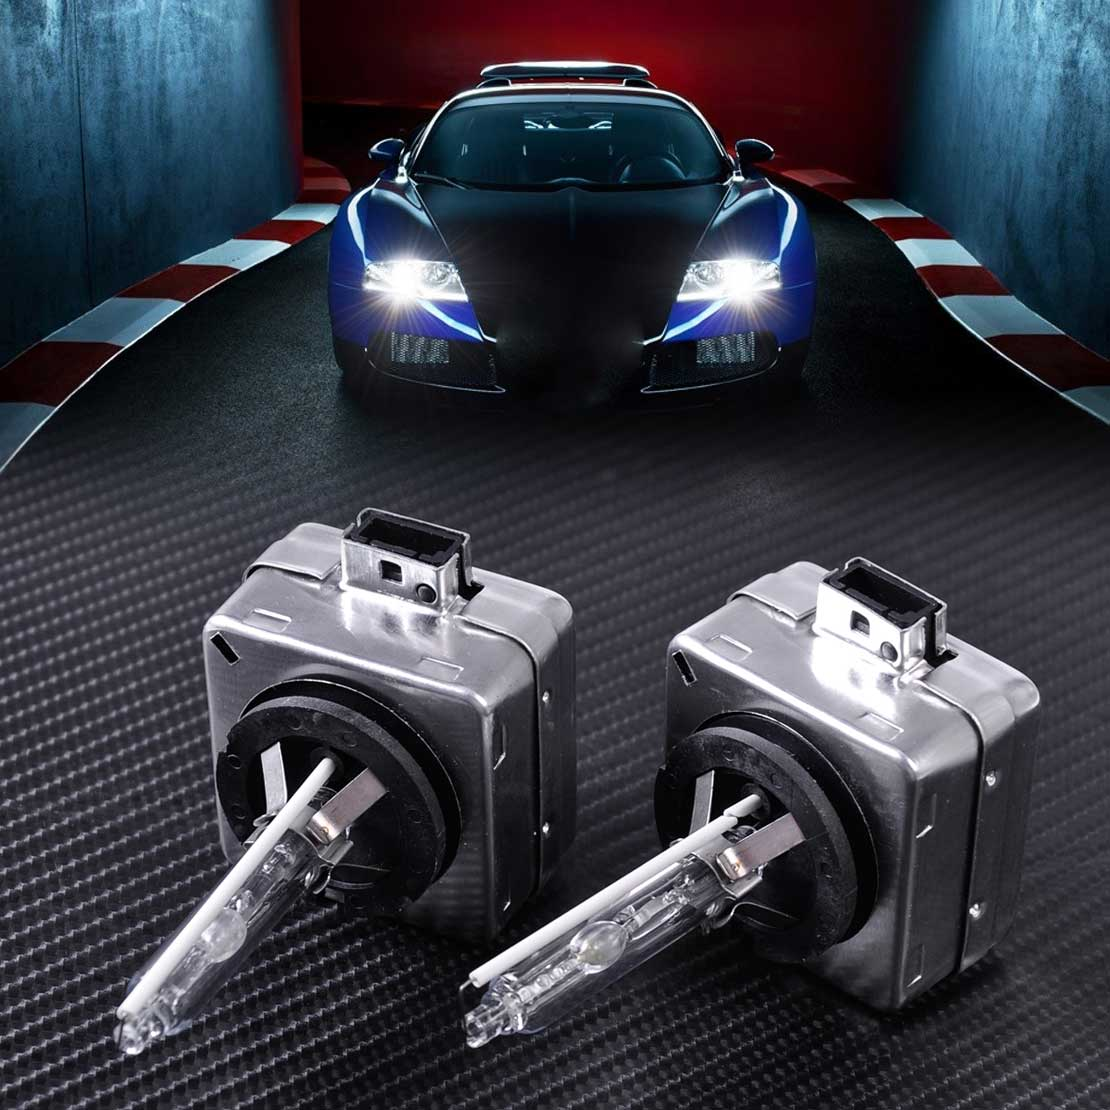 1Pair 6000K D1S D1C D1R HID Xenon Headlight Light Replacement Bulb Lamp 66147, 66144, 66049, 66410, 66146 for Audi Buick Jeep VW<br><br>Aliexpress